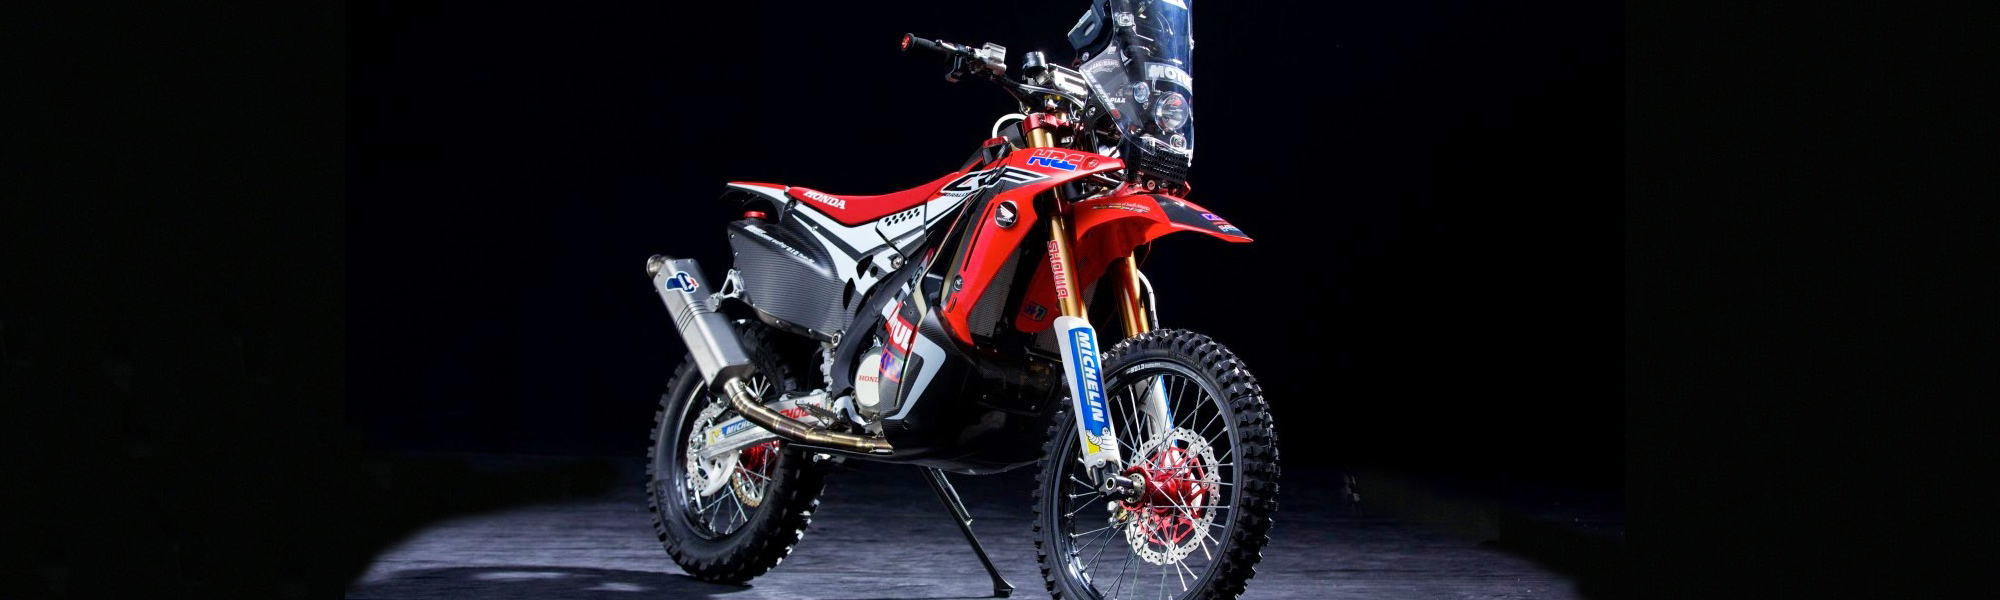 Honda-CRF-450-Rally2